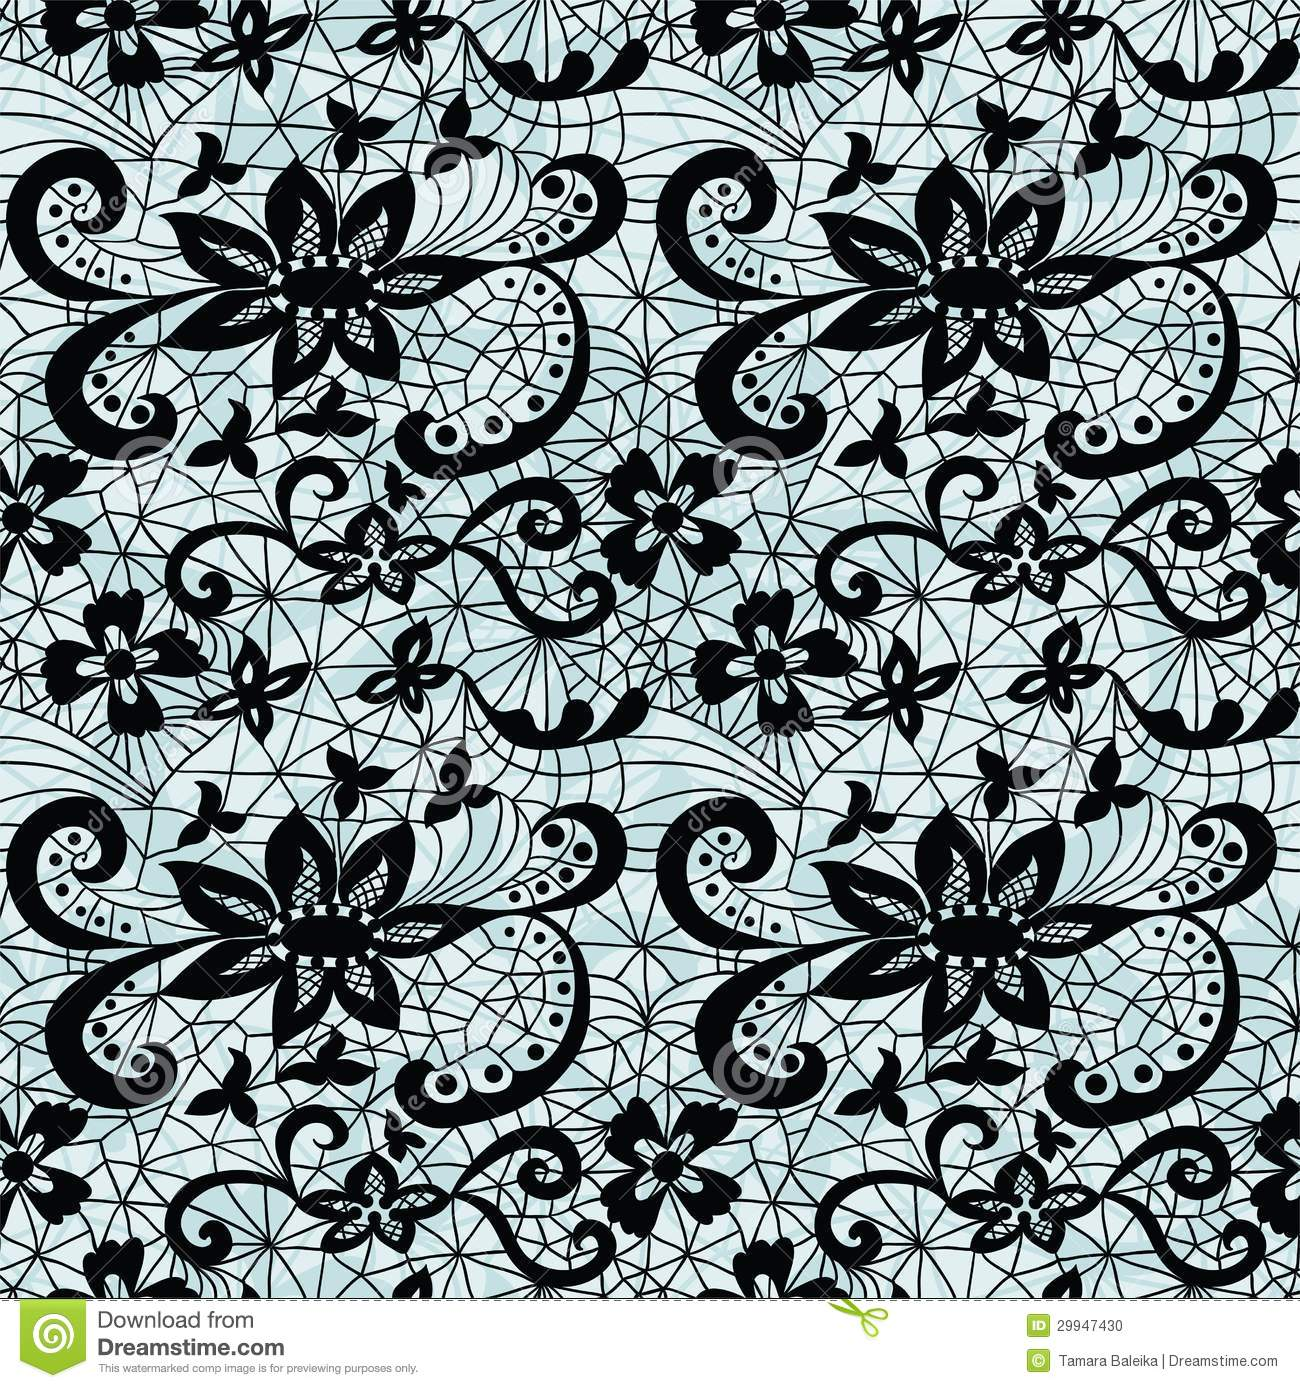 Seamless Vector Lace Patterns